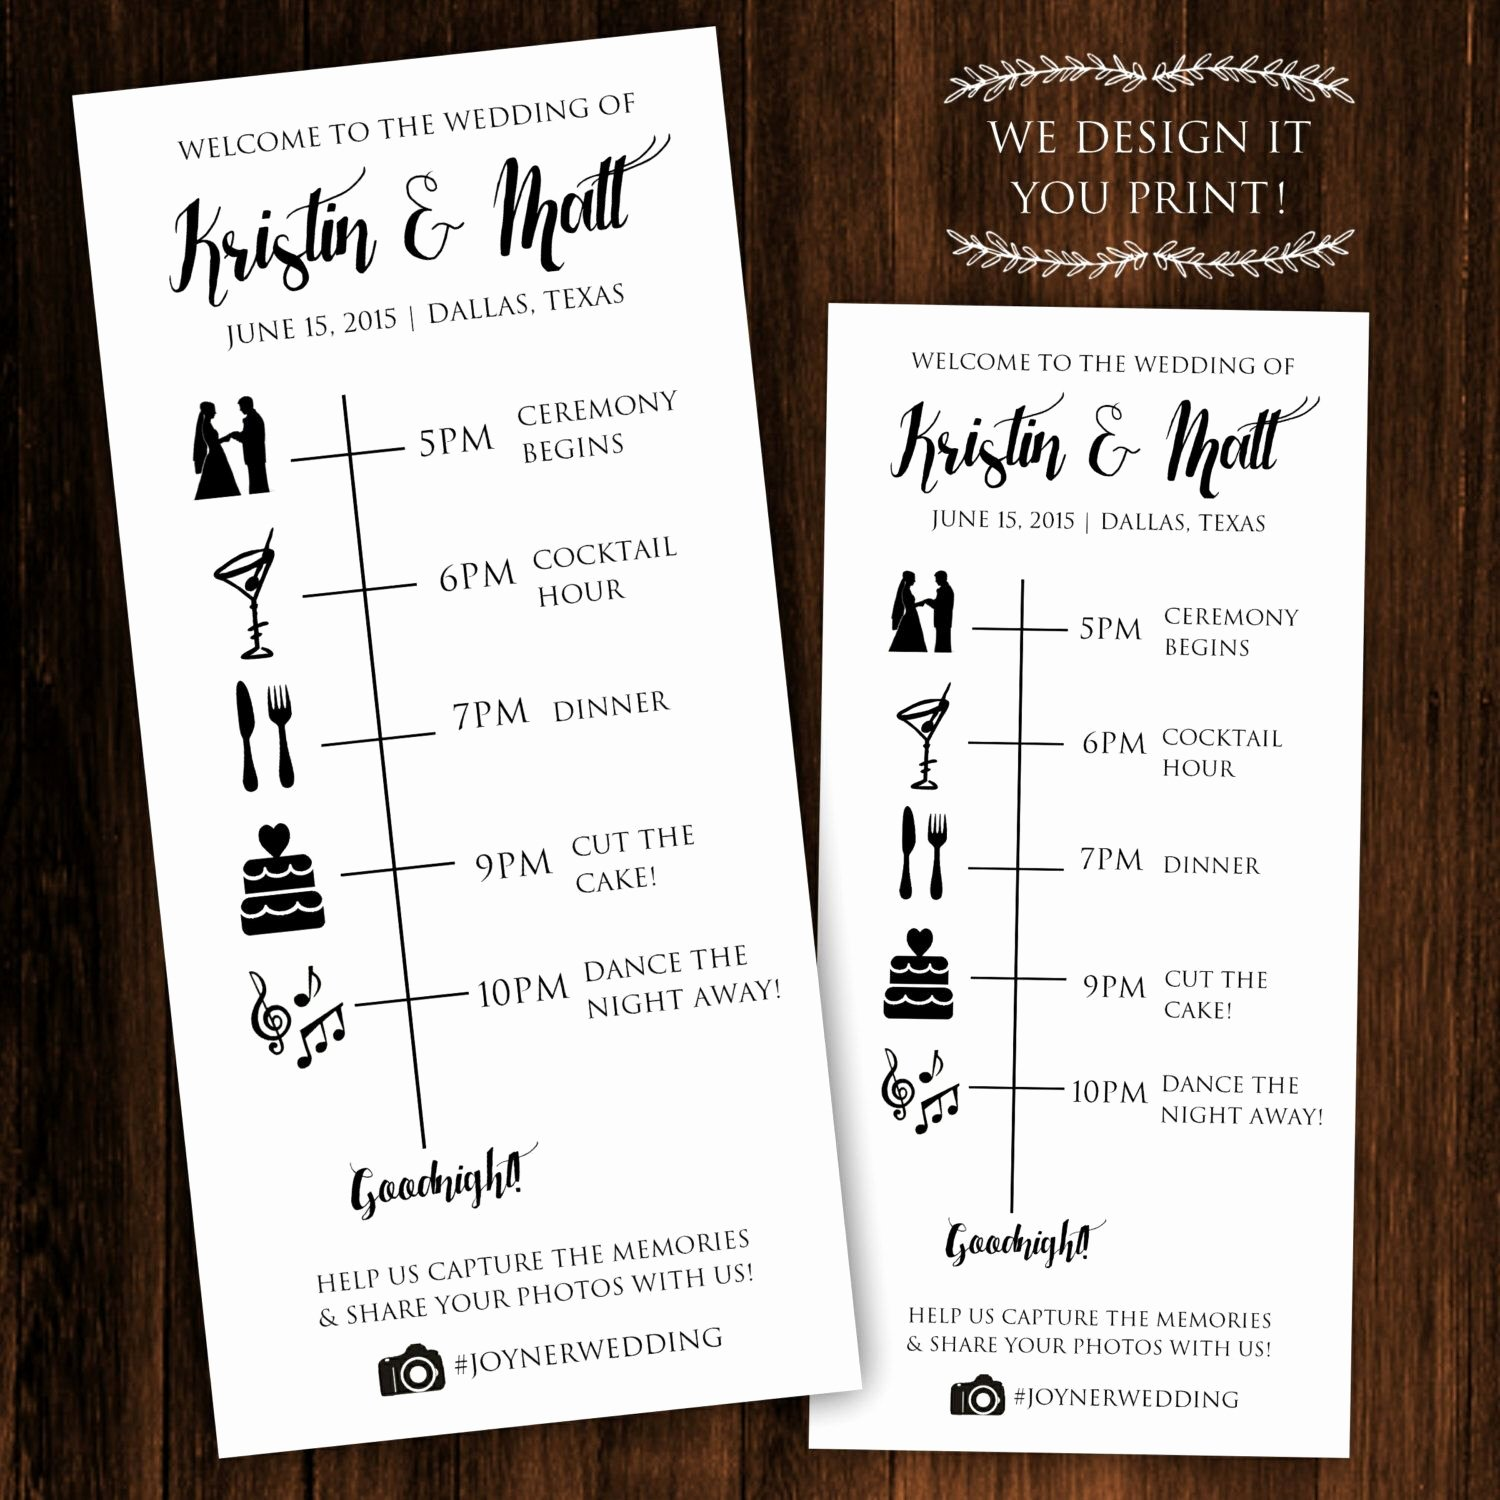 Wedding Itinerary Templates Free Inspirational Pin by Amanda Seibert On the Wedddding